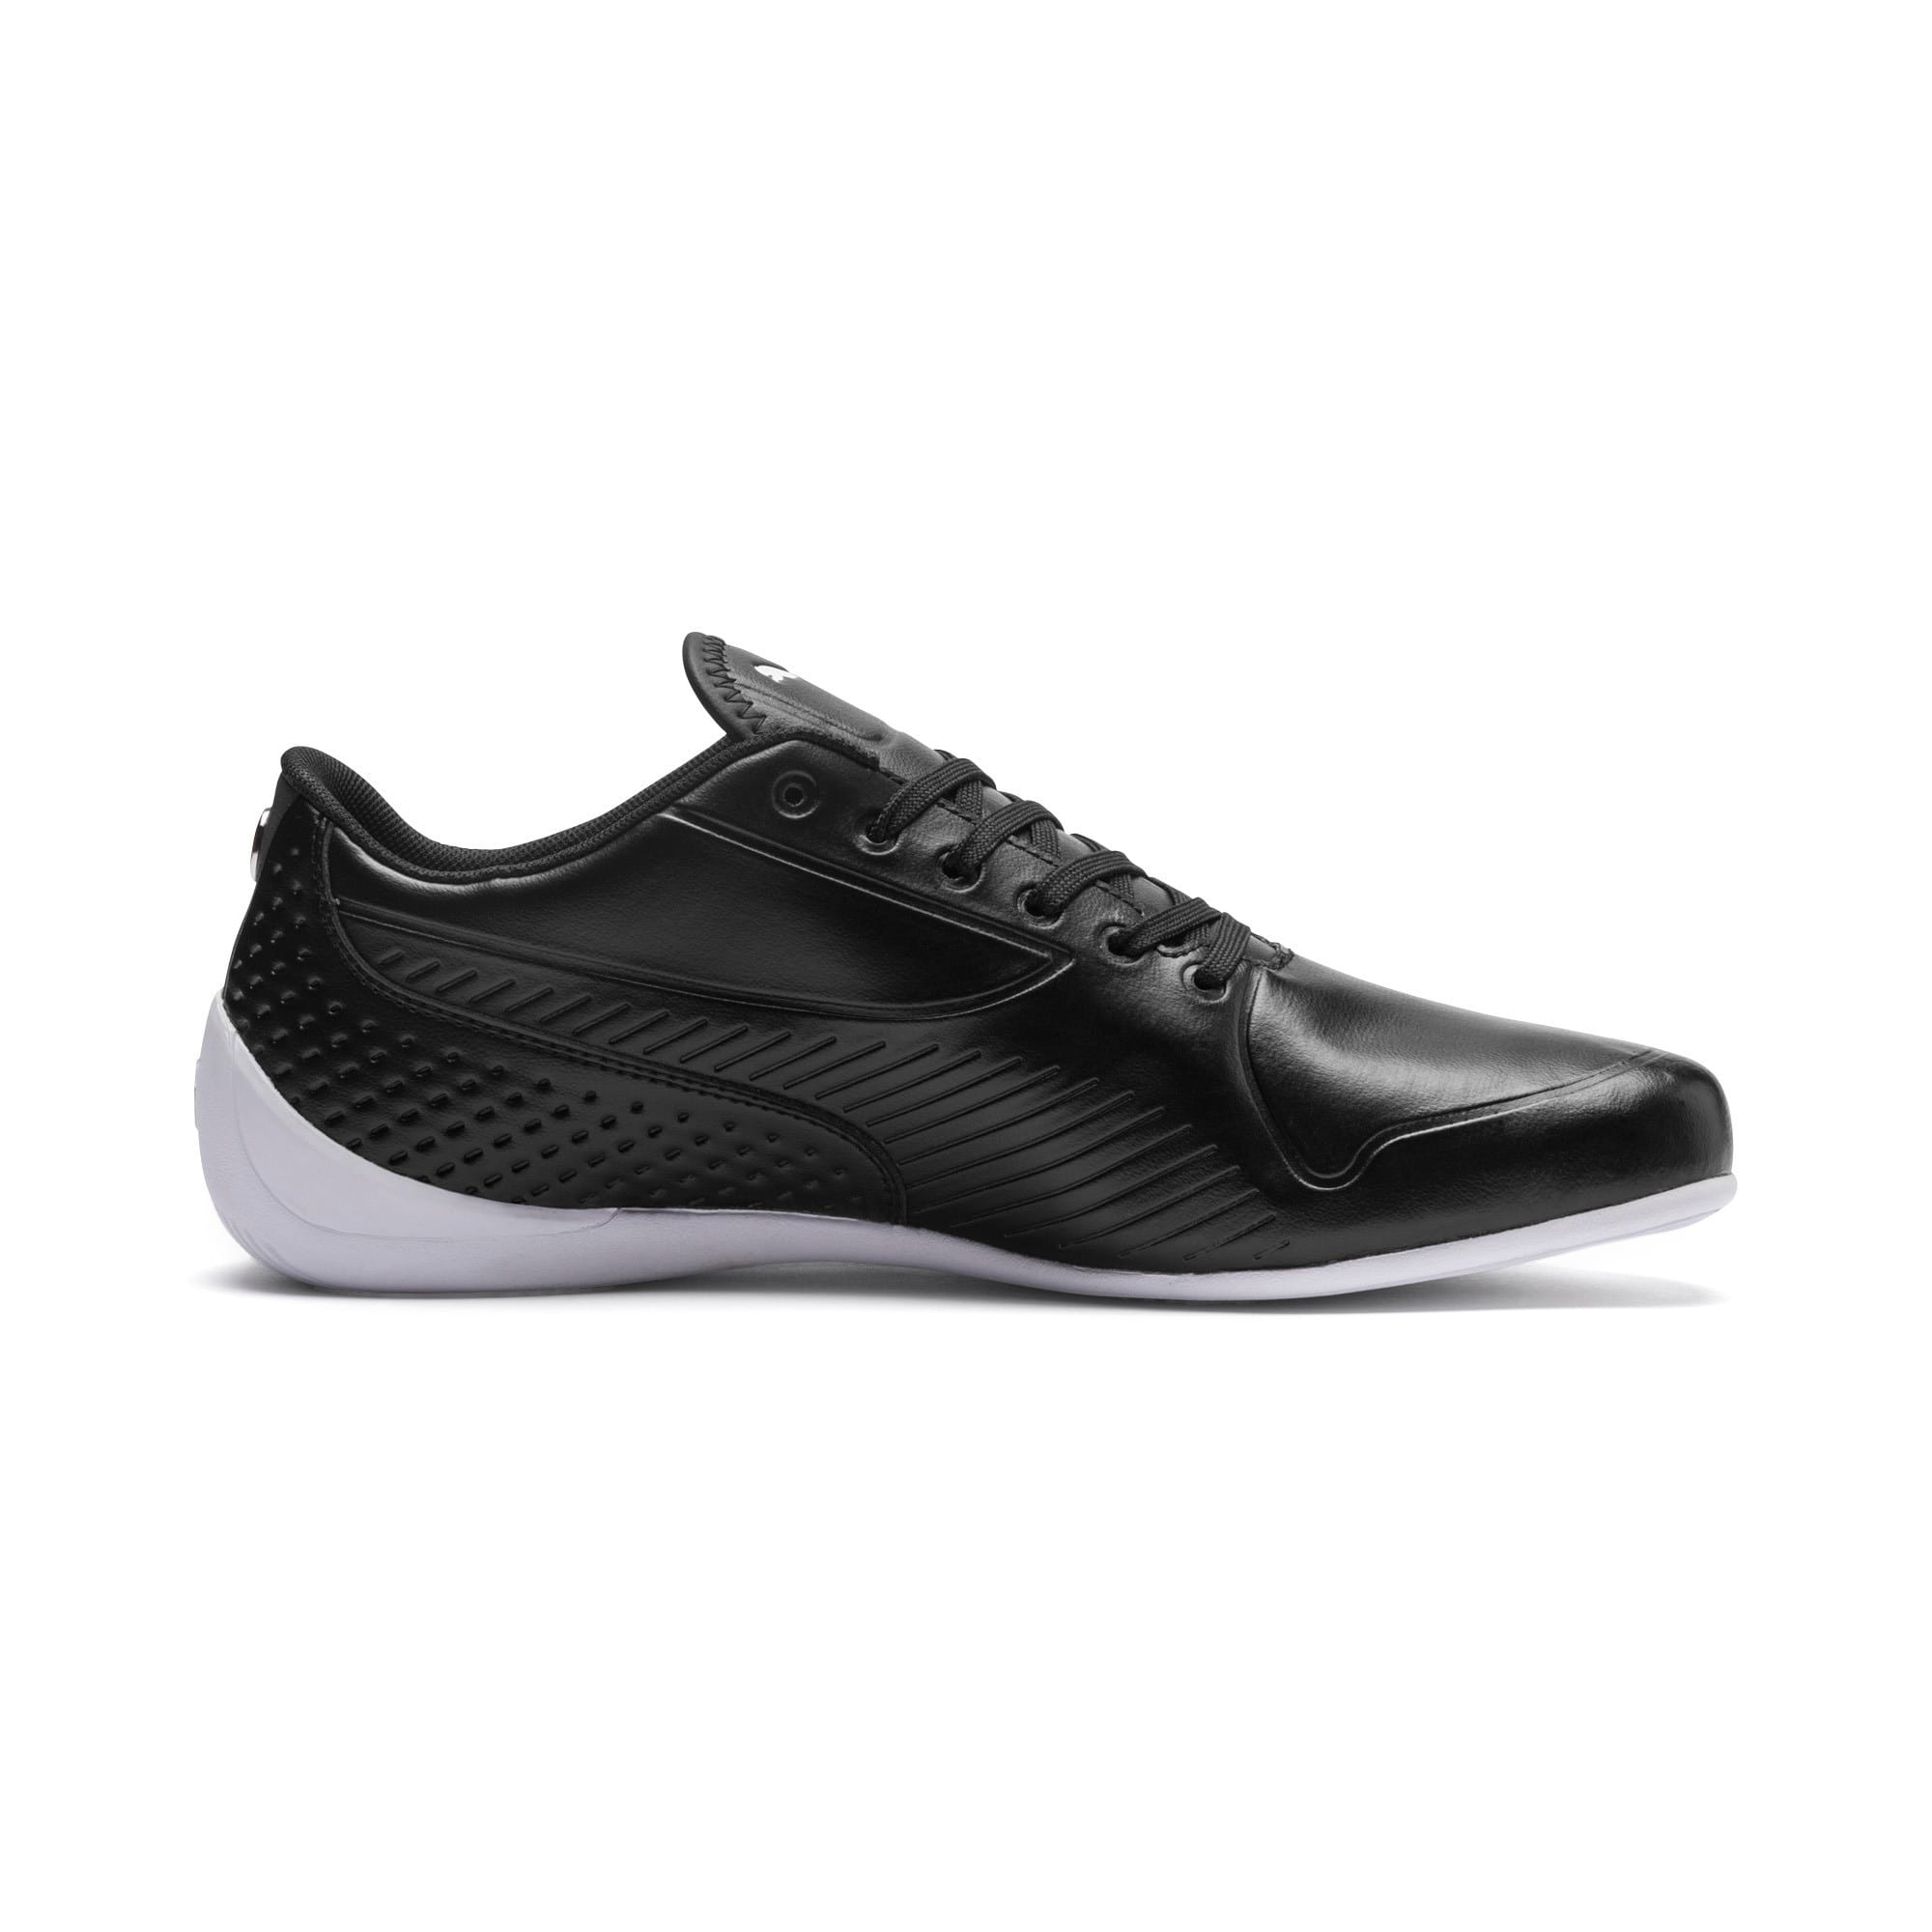 Thumbnail 5 of BMW M Motorsport Drift Cat 7S Ultra Shoes, Puma Black-Puma Black, medium